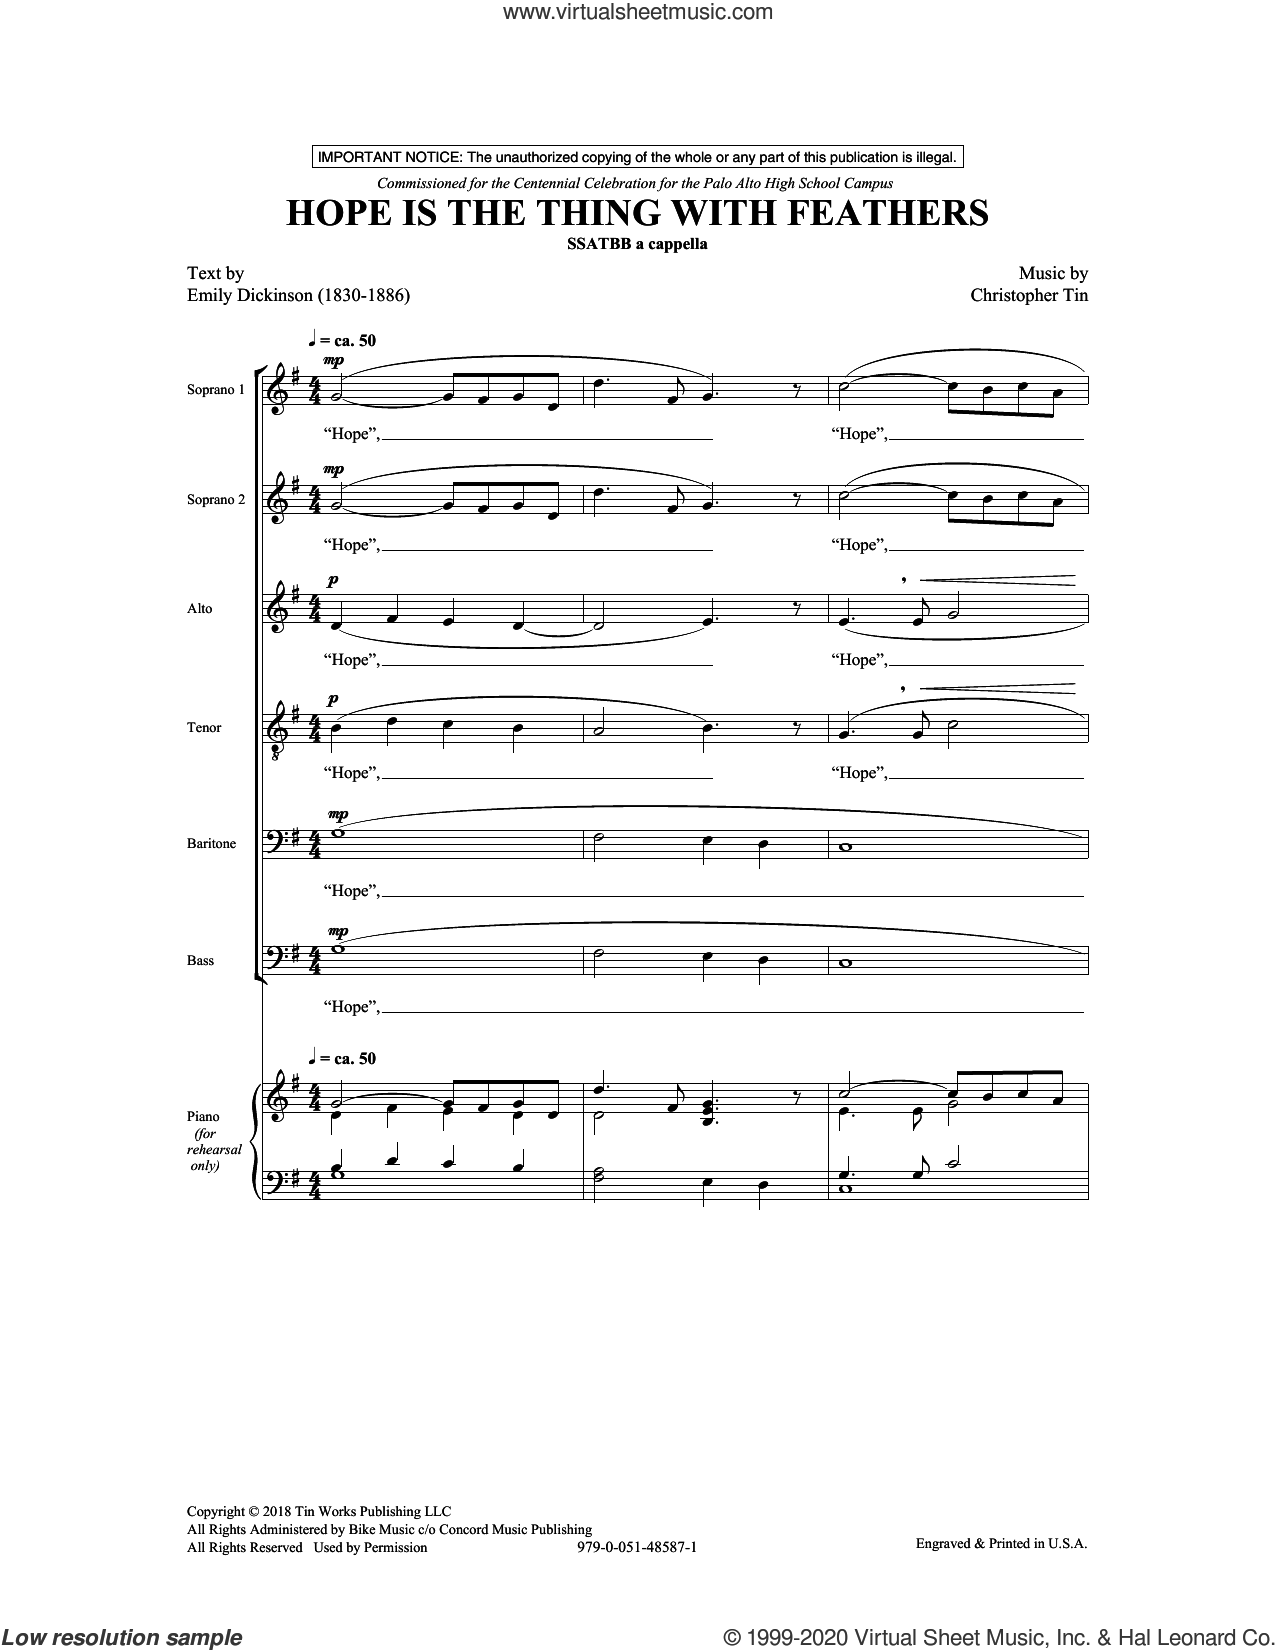 Hope Is The Thing With Feathers sheet music for choir (SATB: soprano, alto, tenor, bass) by Christopher Tin, Emily Dickinson and Emily Dickinson and Christopher Tin, intermediate skill level